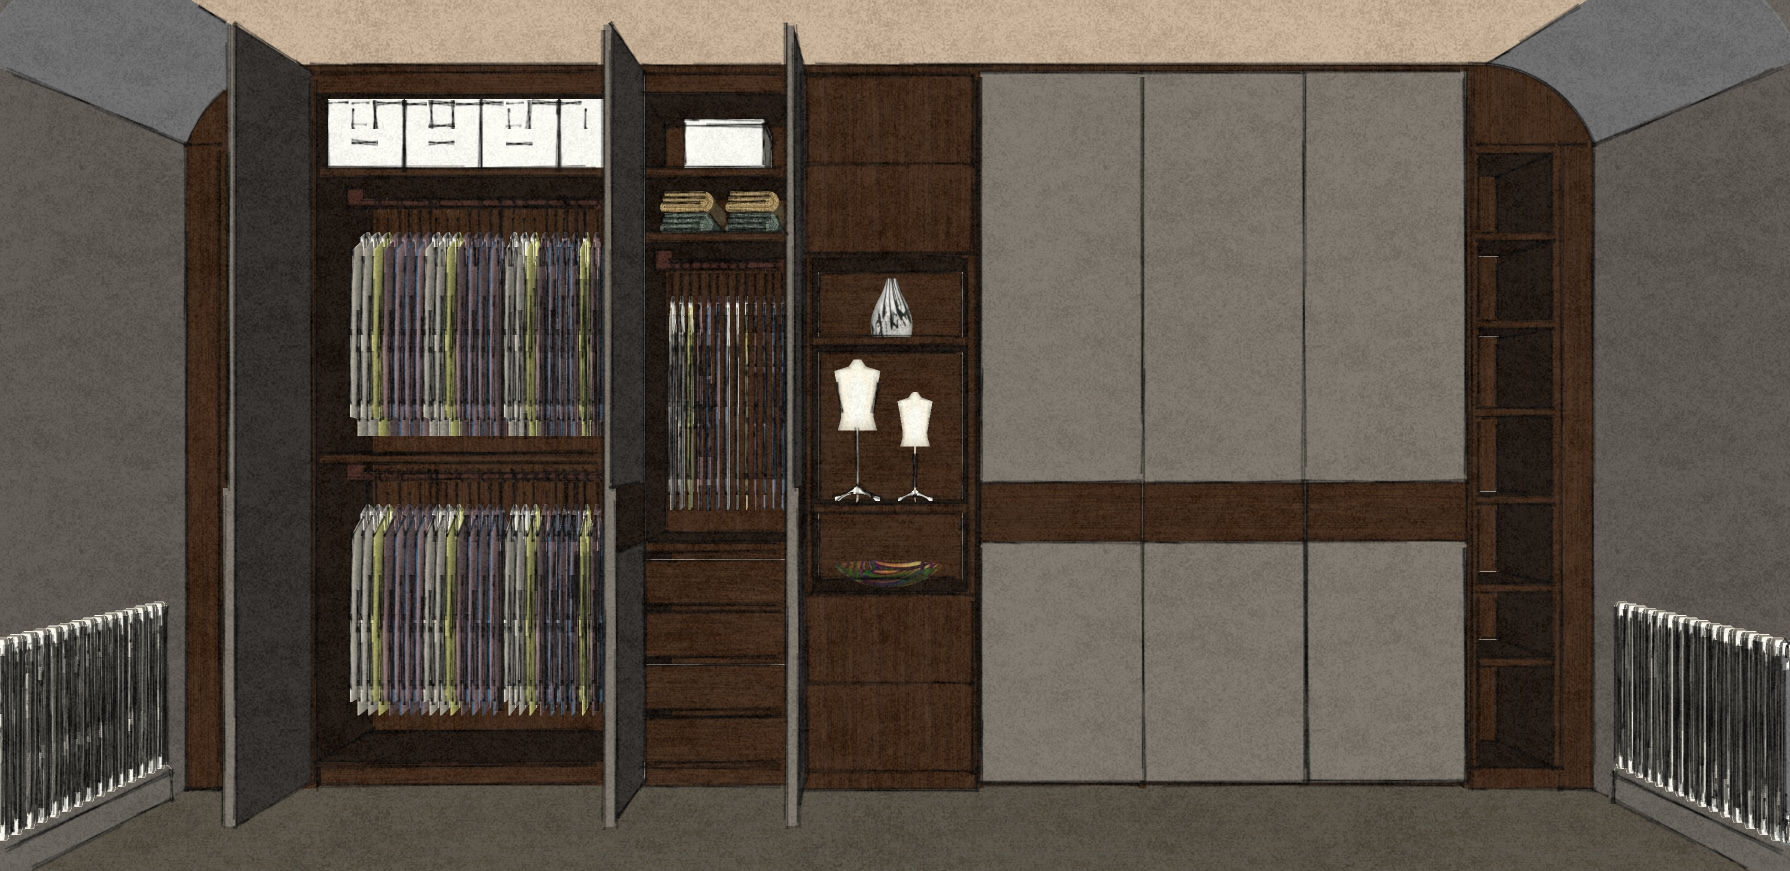 Sarah and Ed initial bedroom design a elevation f.jpg